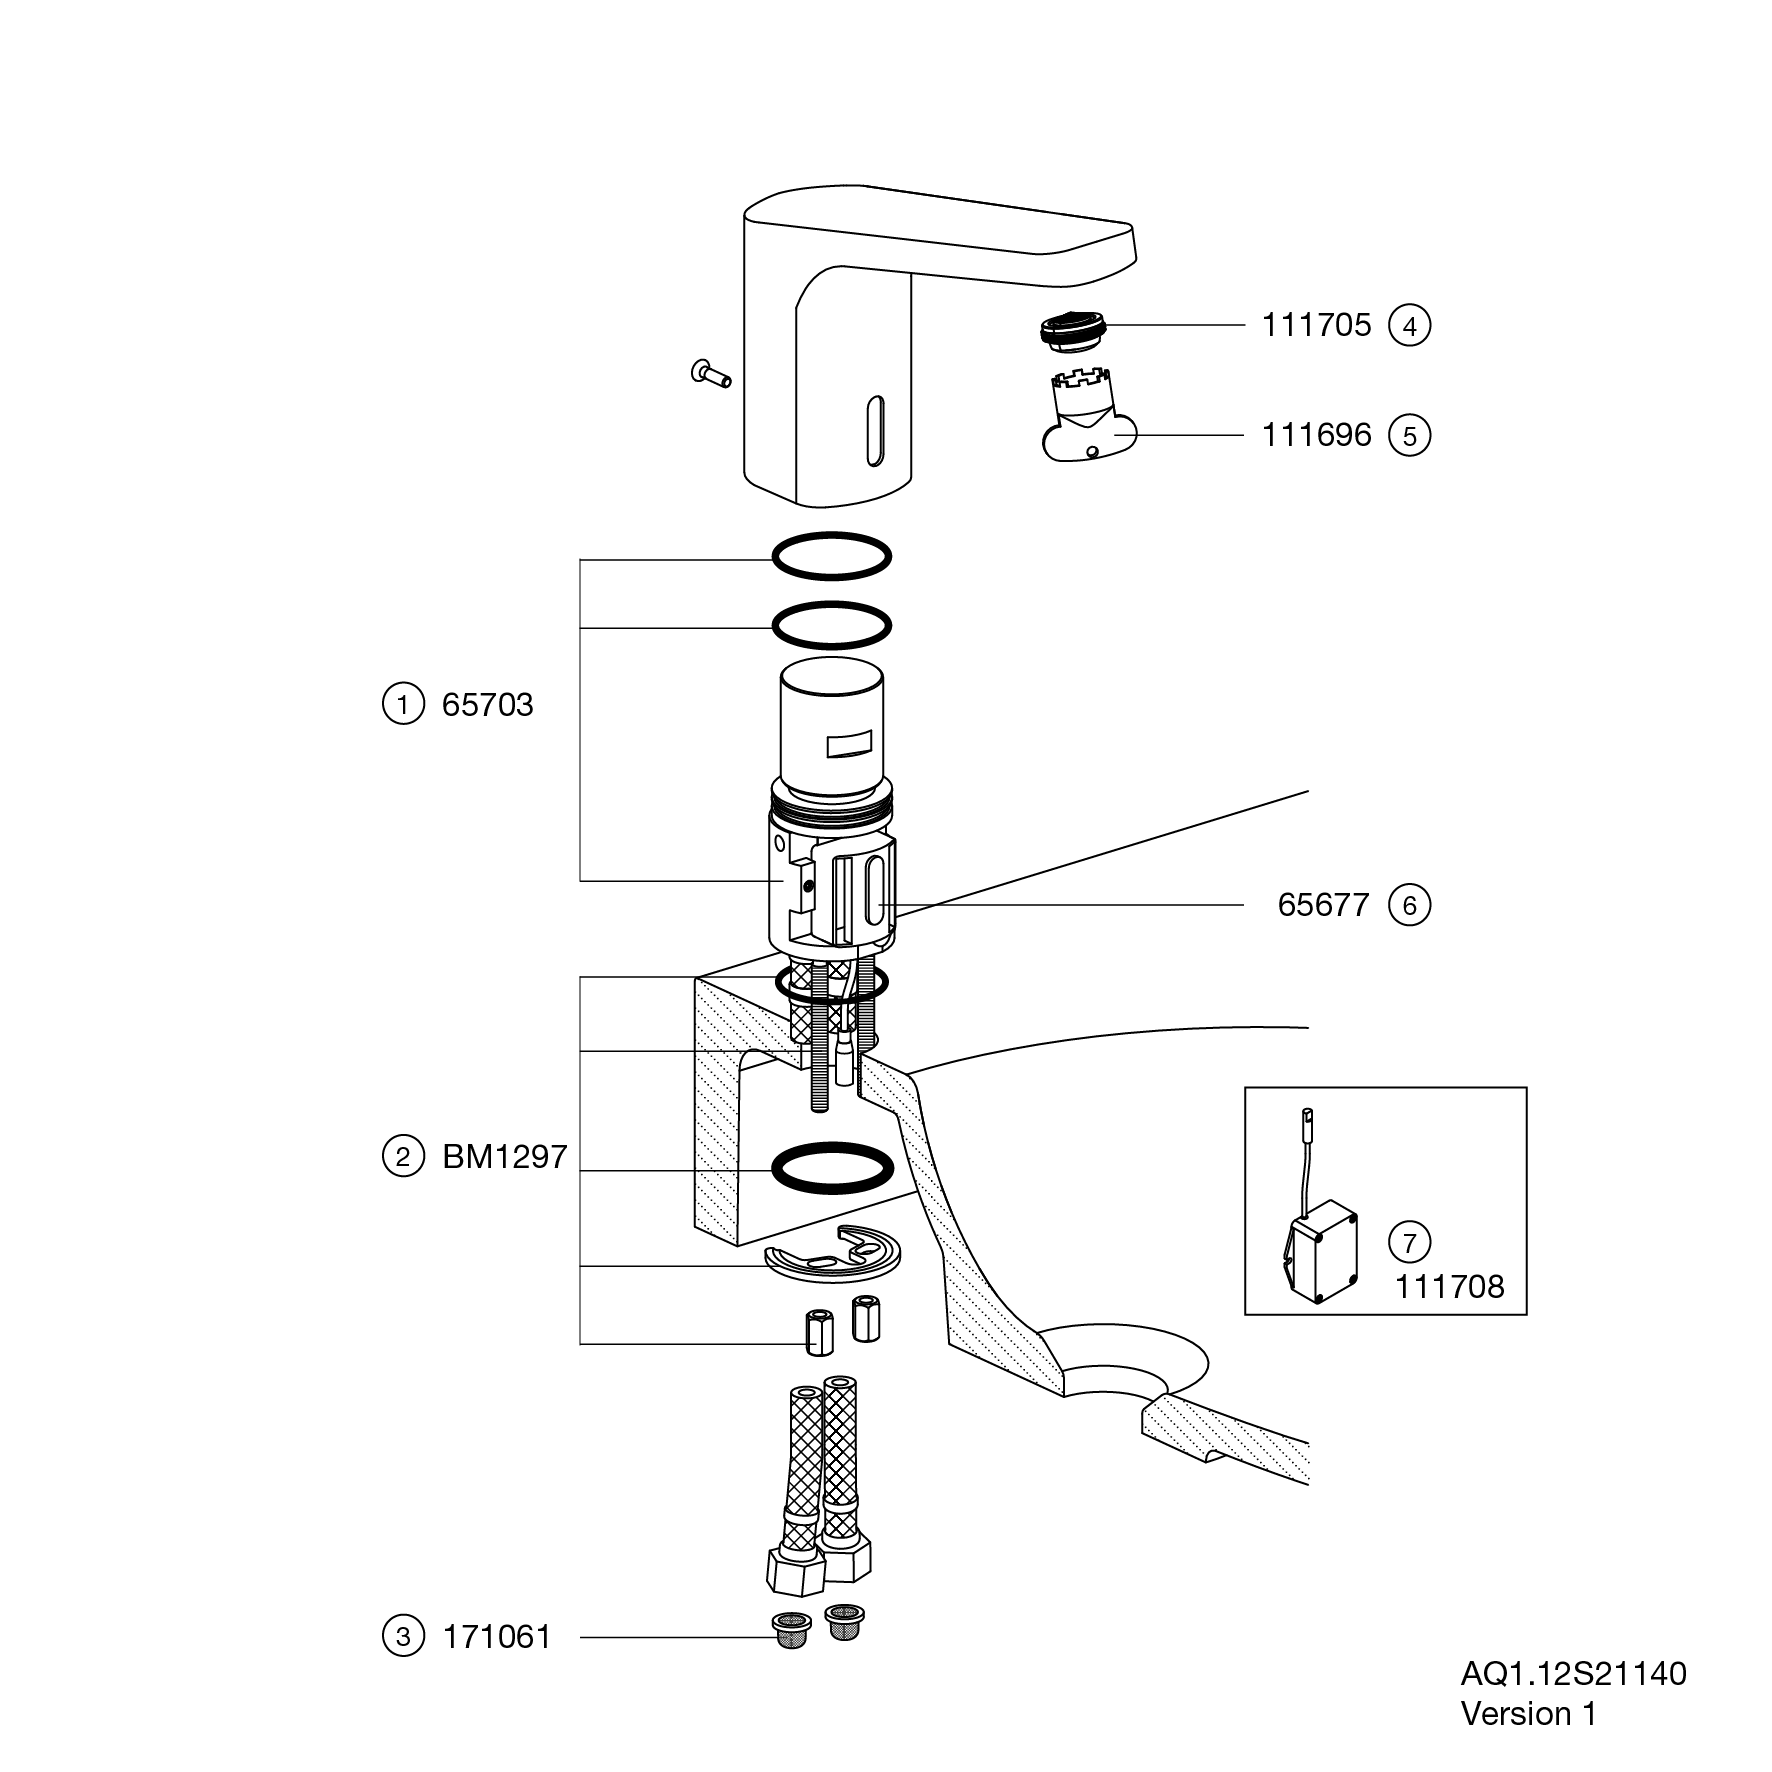 Full together with Volvo Penta Parts Diagram additionally Pirotechnia furthermore Hewi Sensoric Electronic Washbasin Fitting AQ1 besides Crb60c Parts Diagram. on aq1